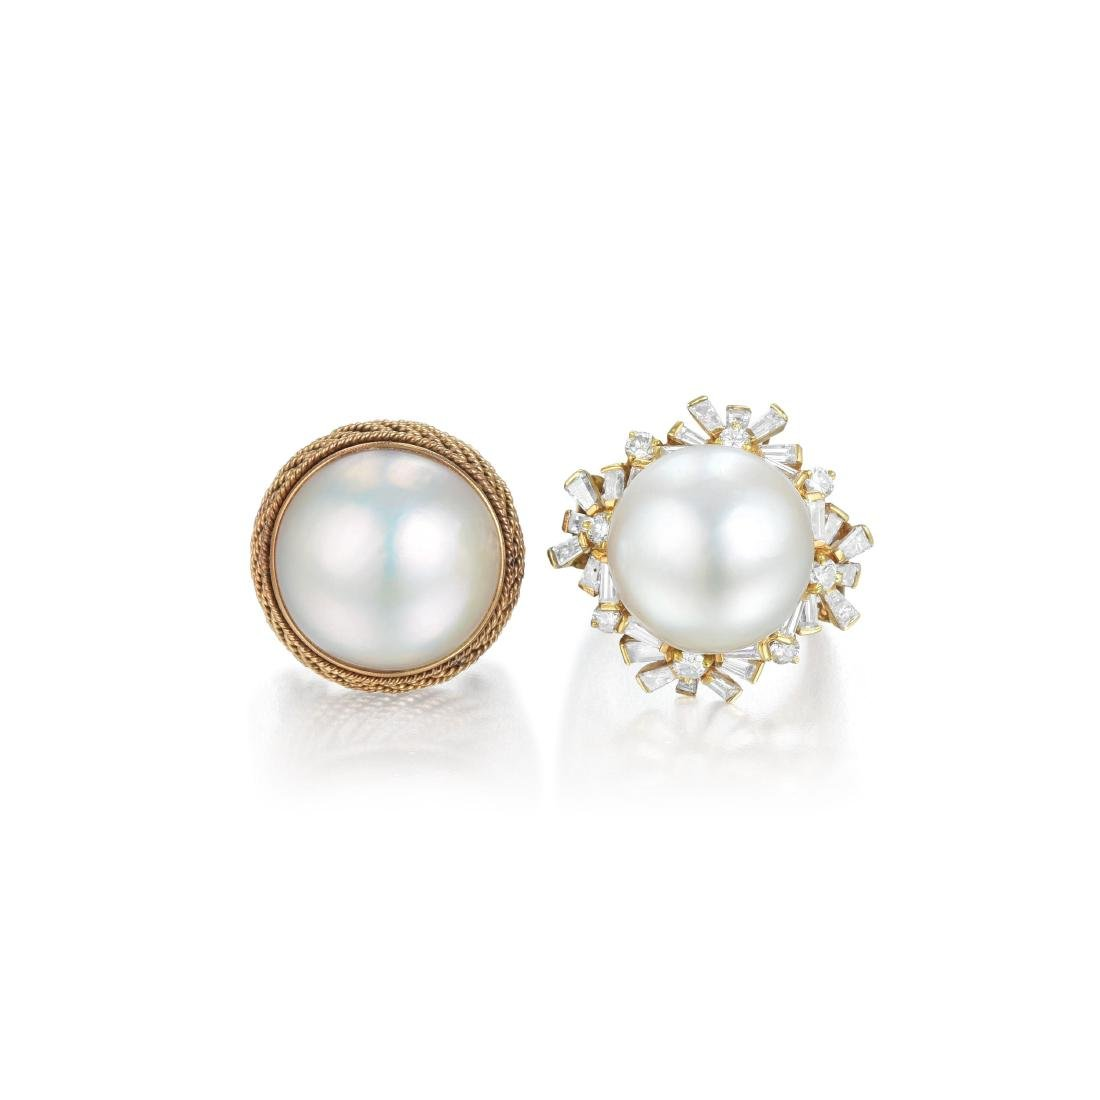 A Lot of Two Pearl and Diamond Rings